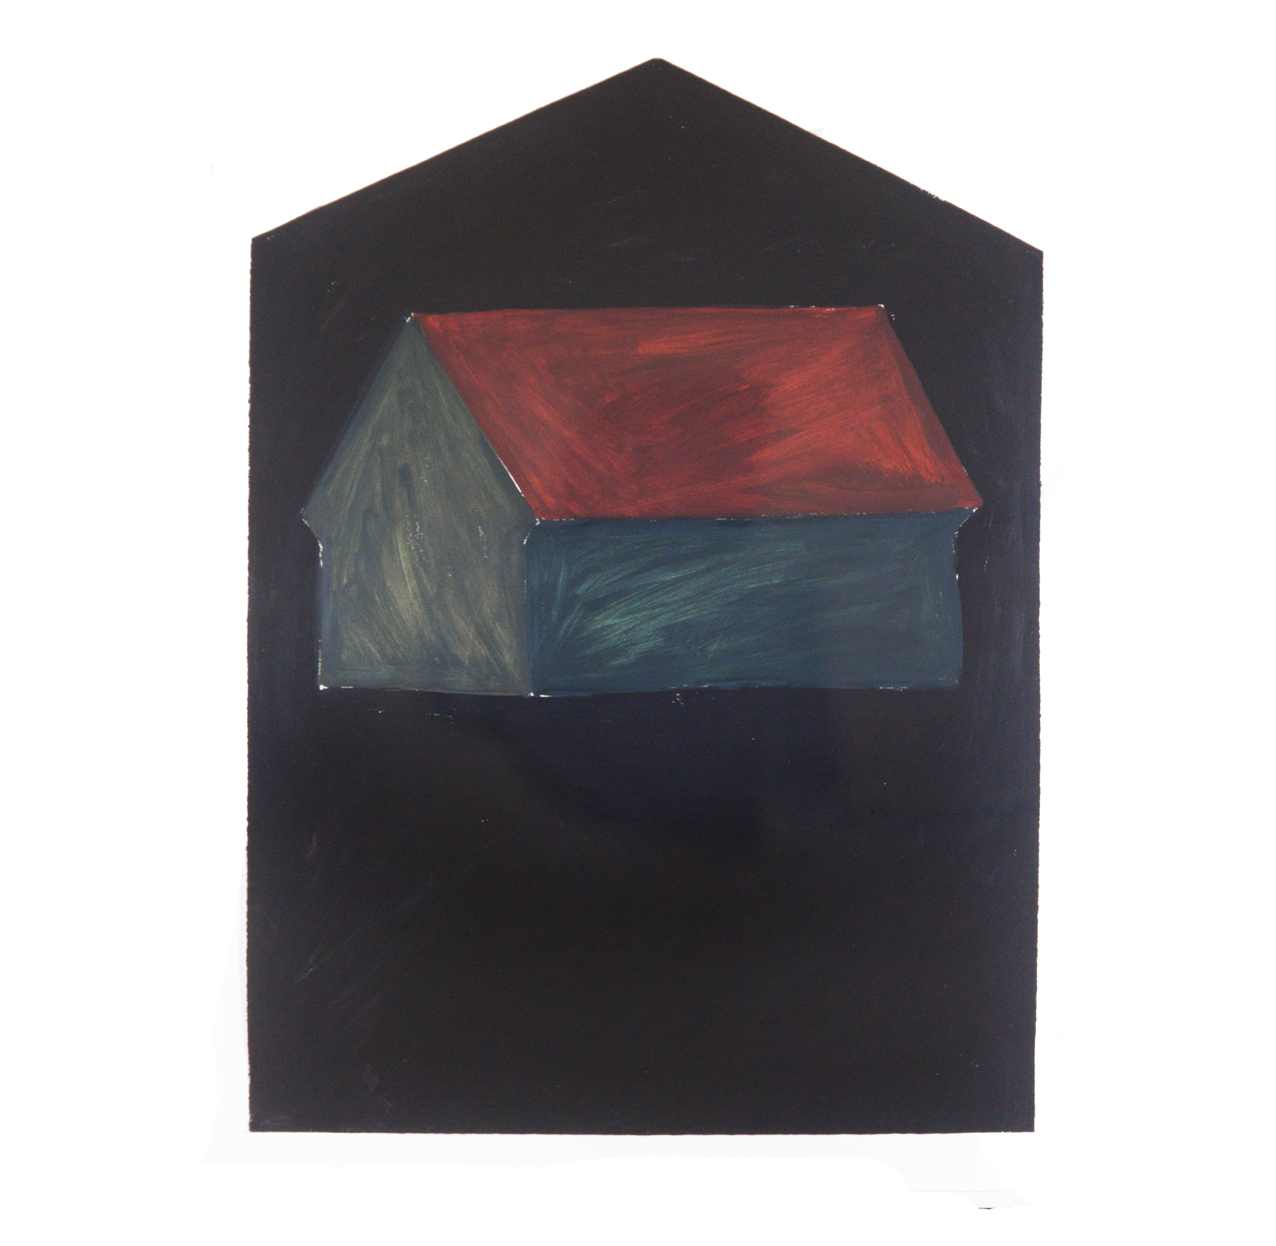 """Maison simple terne rectangulaire""1981, peinture à l'huile sur papier, 106 x 79 cm - Collection Tsagaris/Hilberry, Detroit - Photo Hadler/Stuhr"